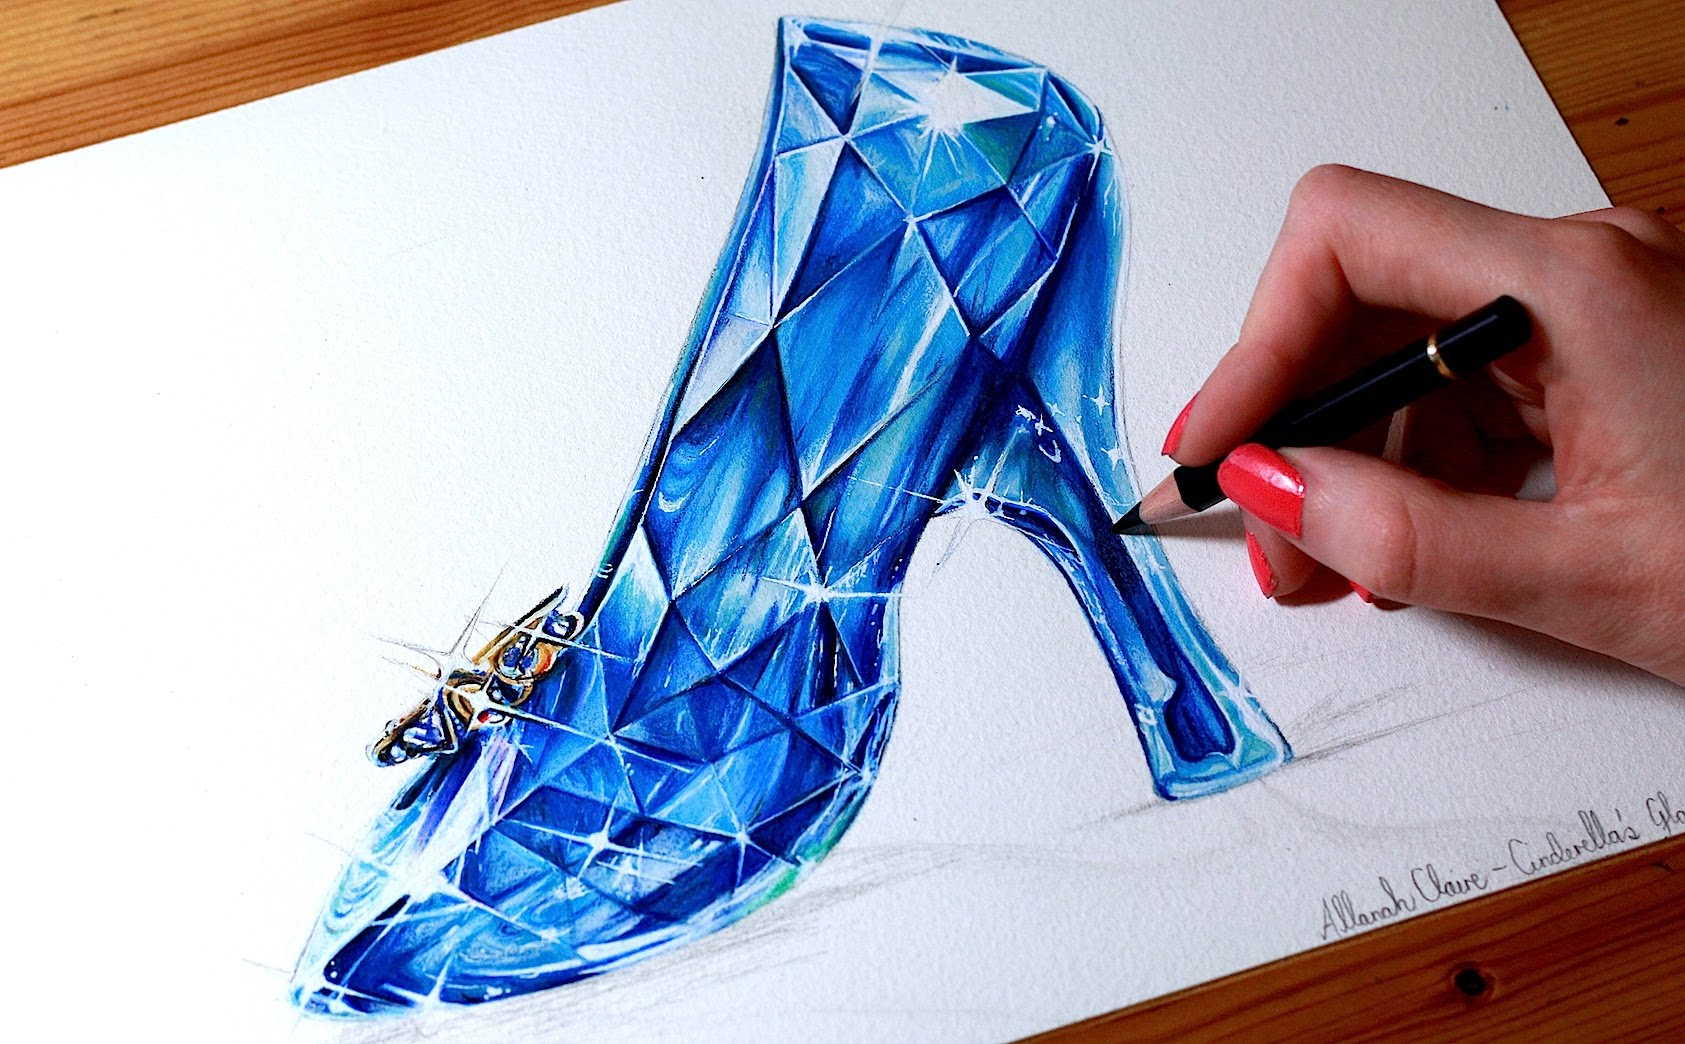 Drawn shoe glass slipper #14